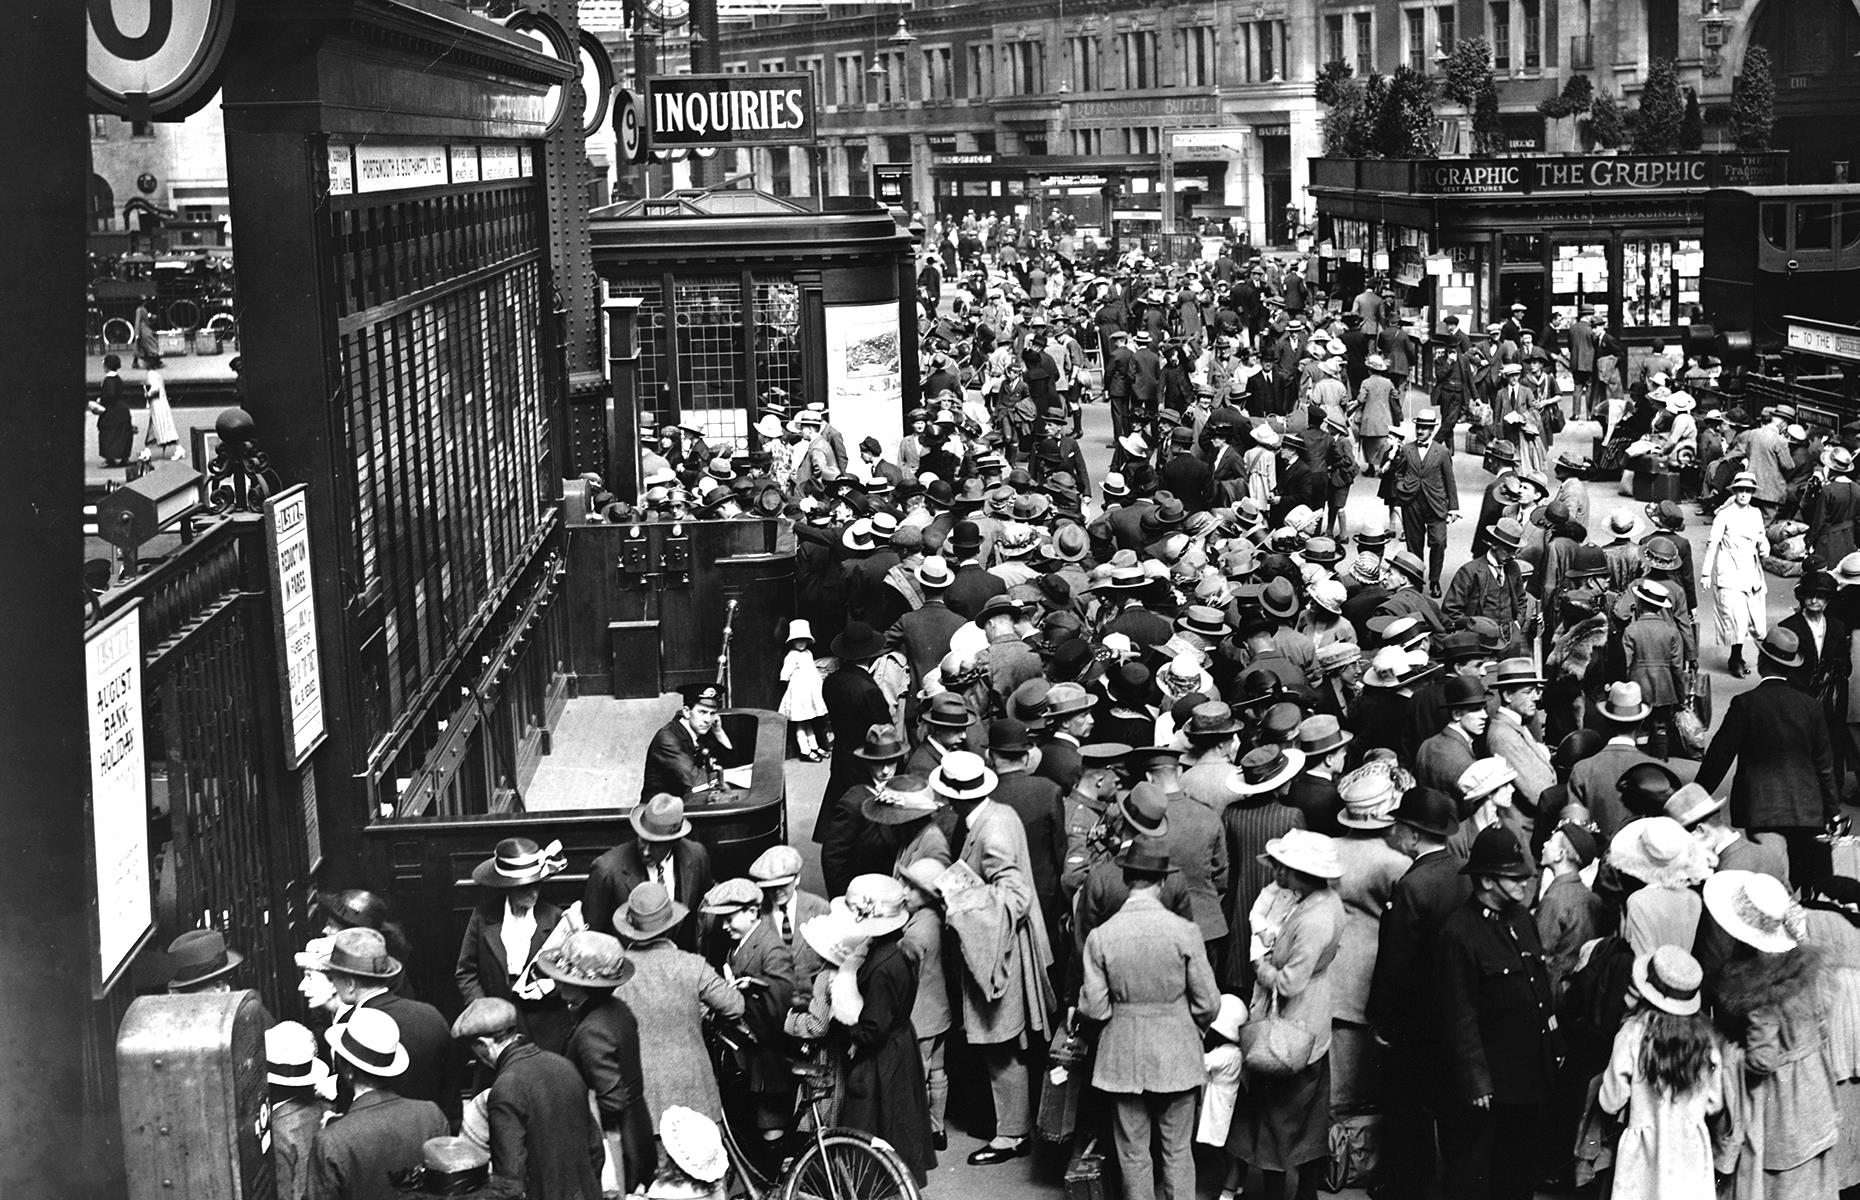 "Slide 22 of 35: The pandemic saw some rail routes altered or halted altogether. But during the interwar years, train travel boomed, as shown by this crowd pictured at Waterloo Station in 1922. In fact, in the book British Tourism, these are described as the ""glory years of steam trains"", with vacationers enjoying ""relatively fast and efficient services"". Take a look at these stunning photos of the world's most beautiful train stations."